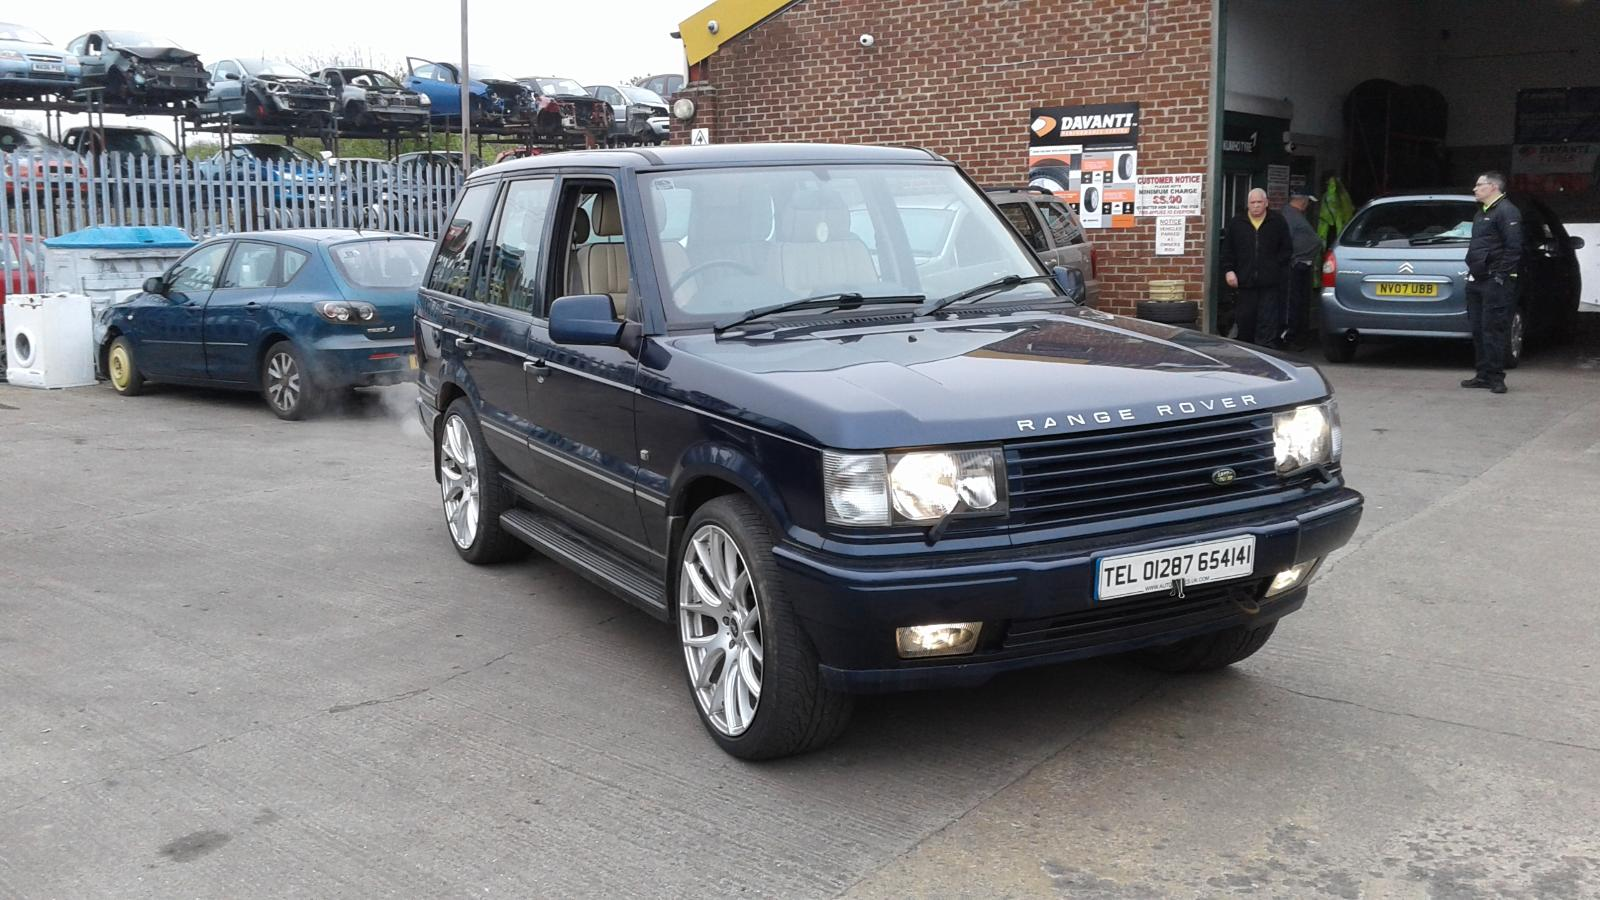 2002 range rover p38 nsf passengers left electric door mirror 644 blue breaking ebay. Black Bedroom Furniture Sets. Home Design Ideas